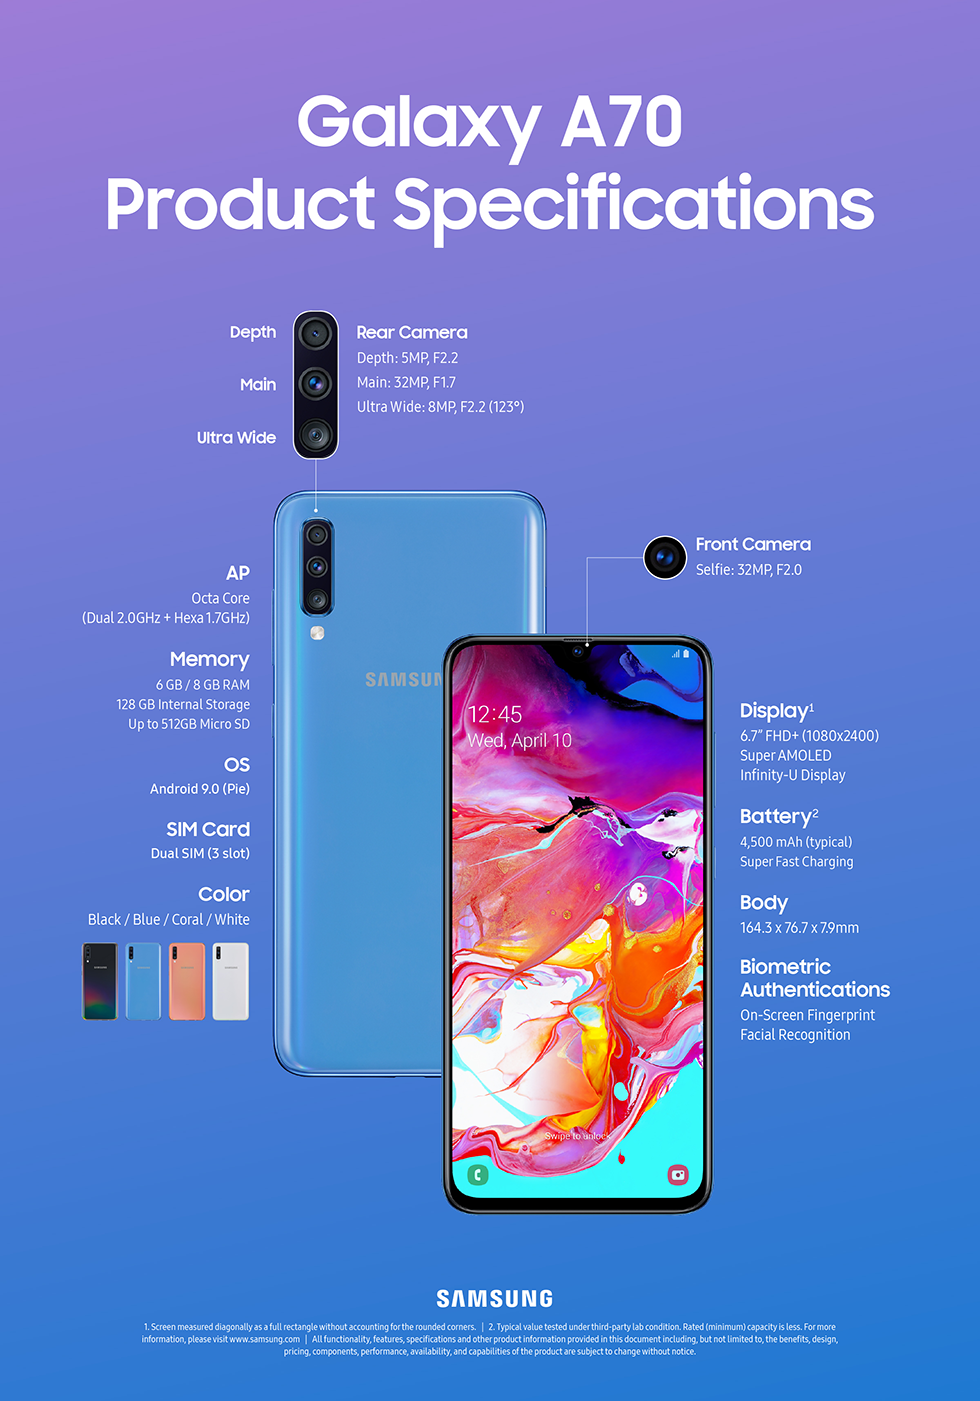 SAMSUNG M30 SPECIFICATION AND PRICE IN PAKISTAN - Samsung